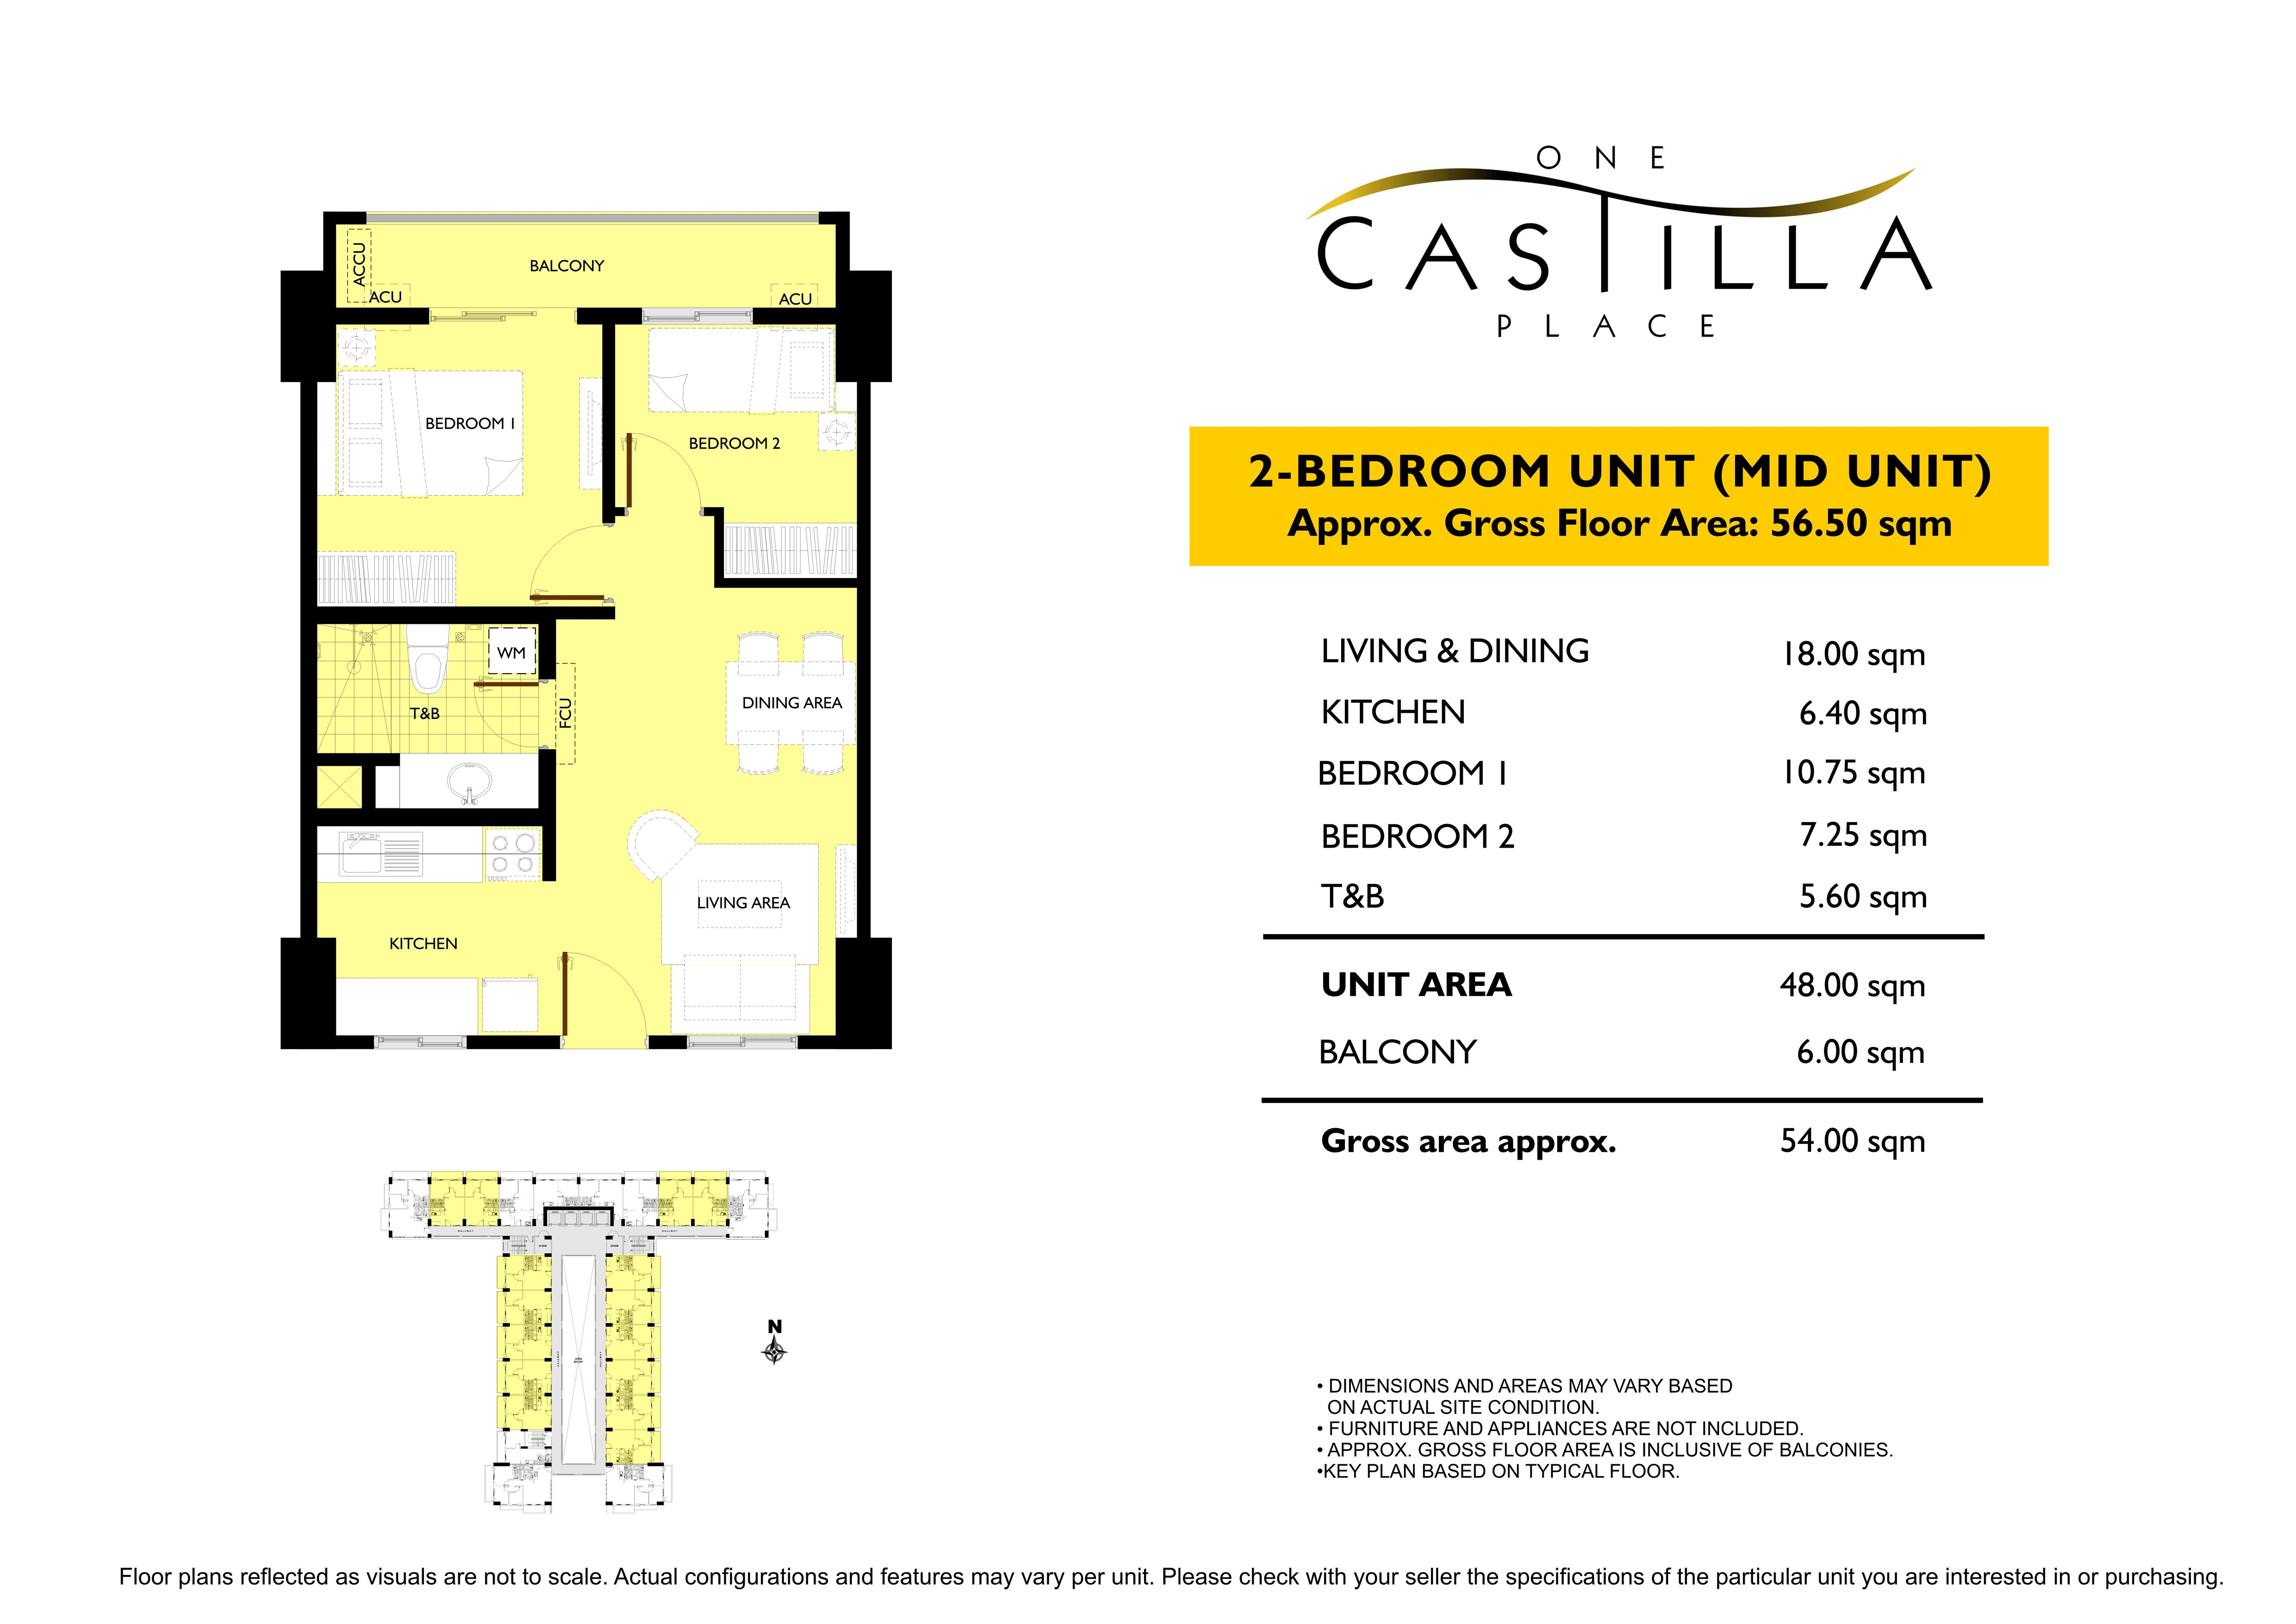 one-castilla-place-2br-mid-unit-54